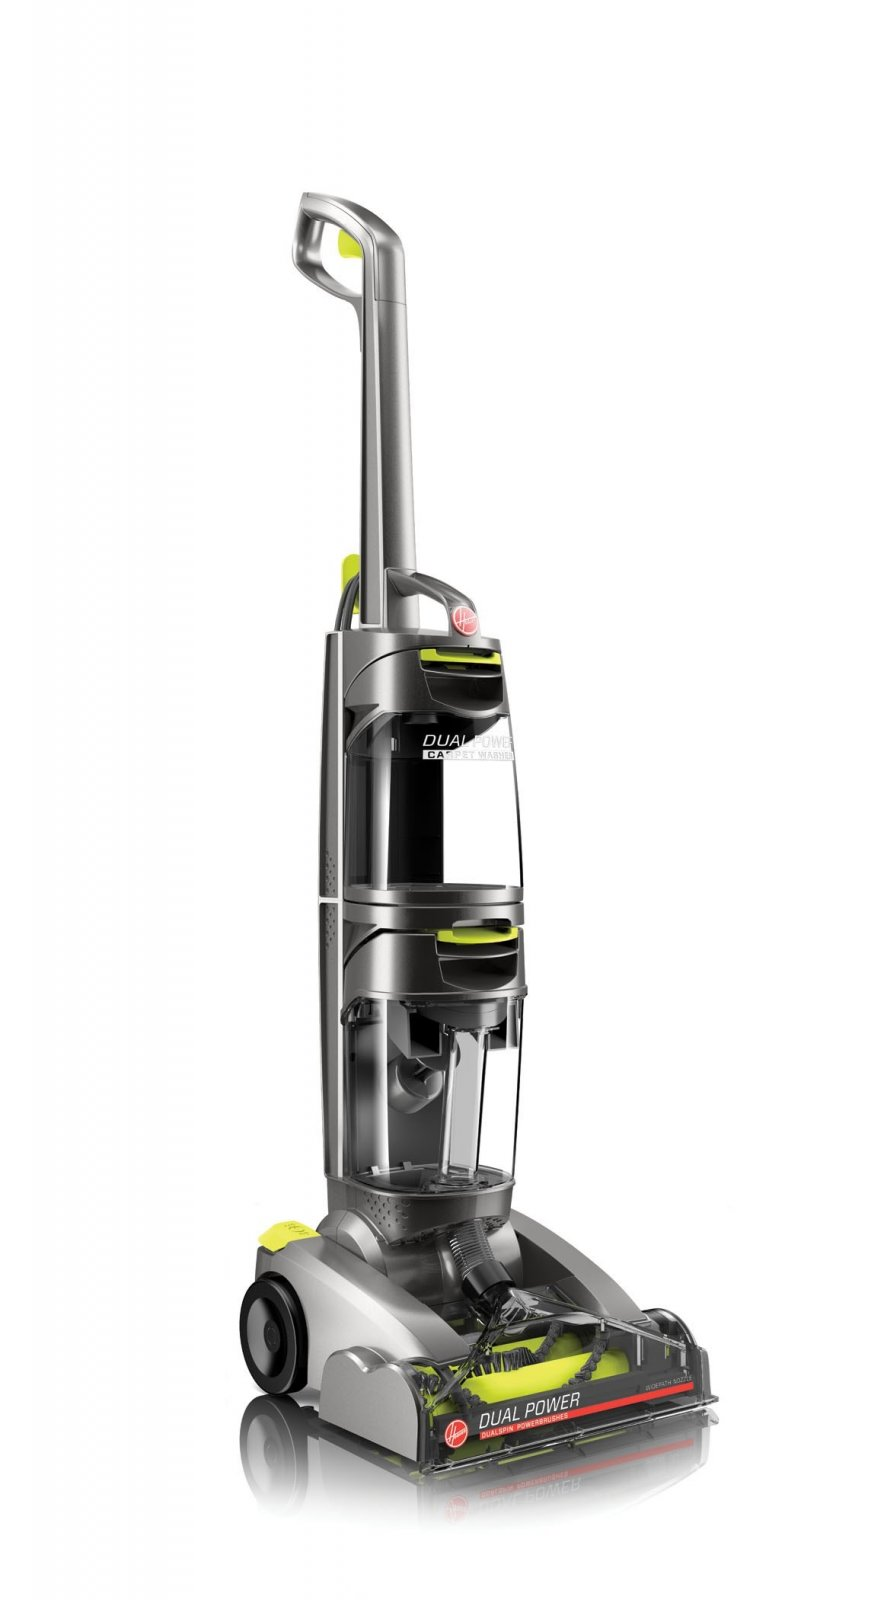 Hoover Reconditioned Dual Power Carpet Washer